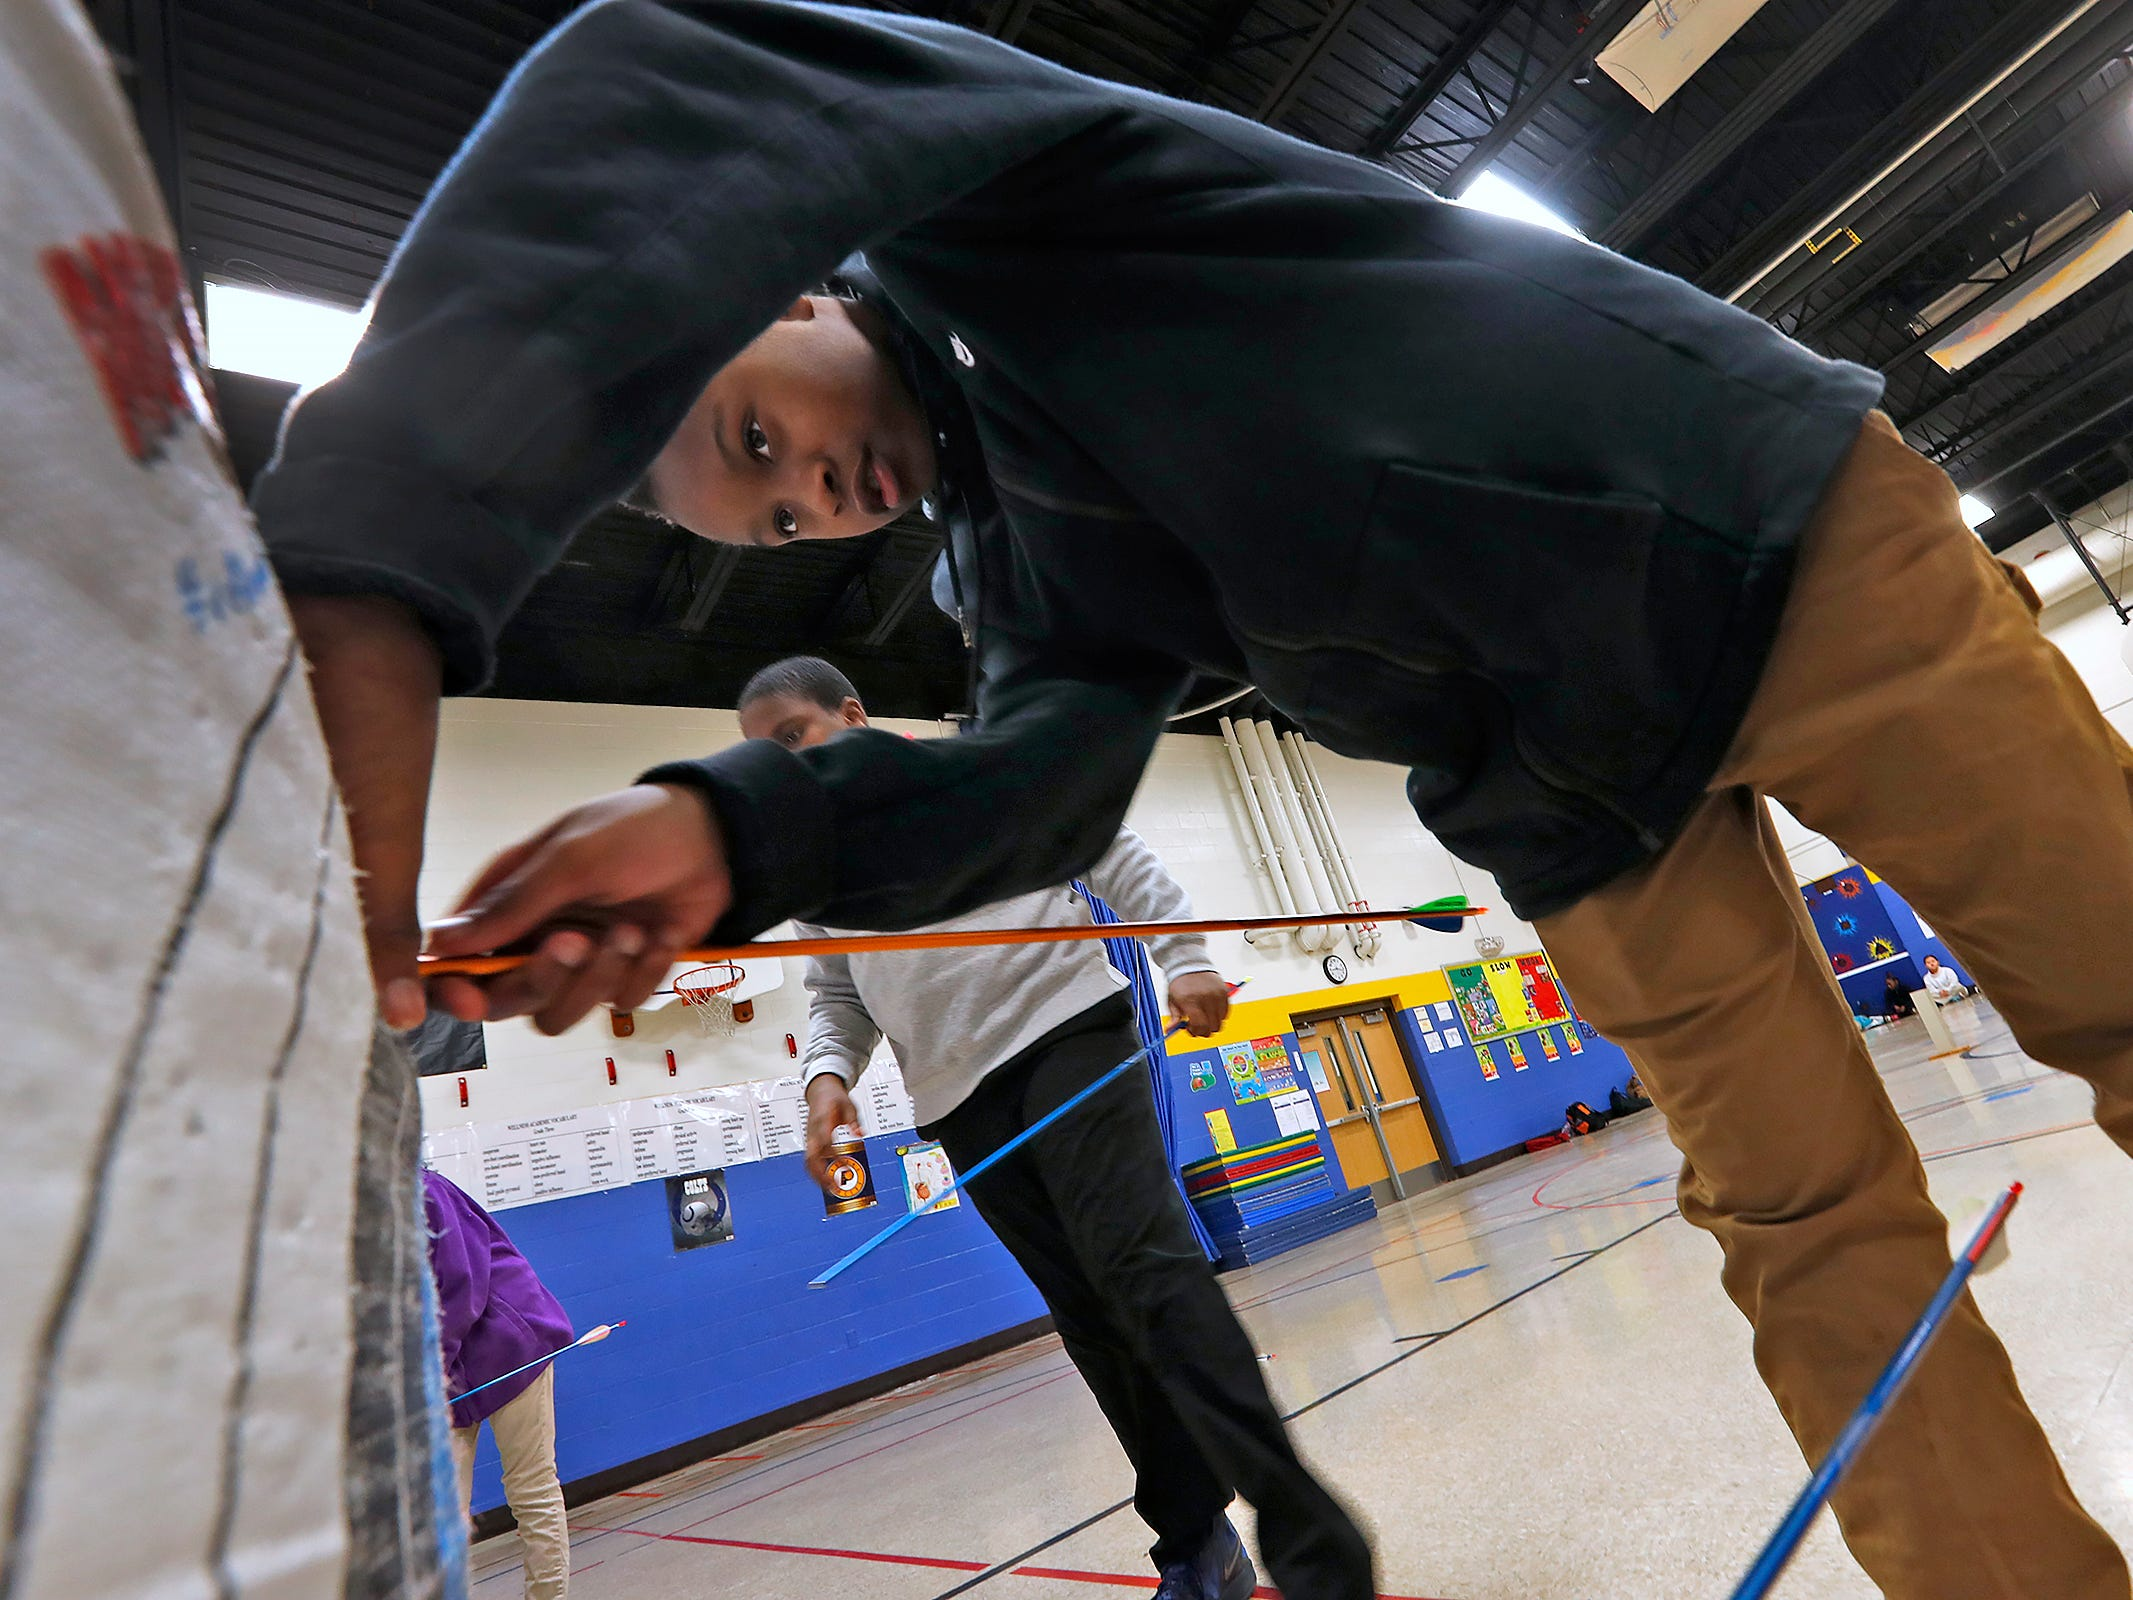 Aadian Richmond retrieves his arrow during archery class at Lew Wallace Elementary IPS 107, Thursday, Dec. 20, 2018.